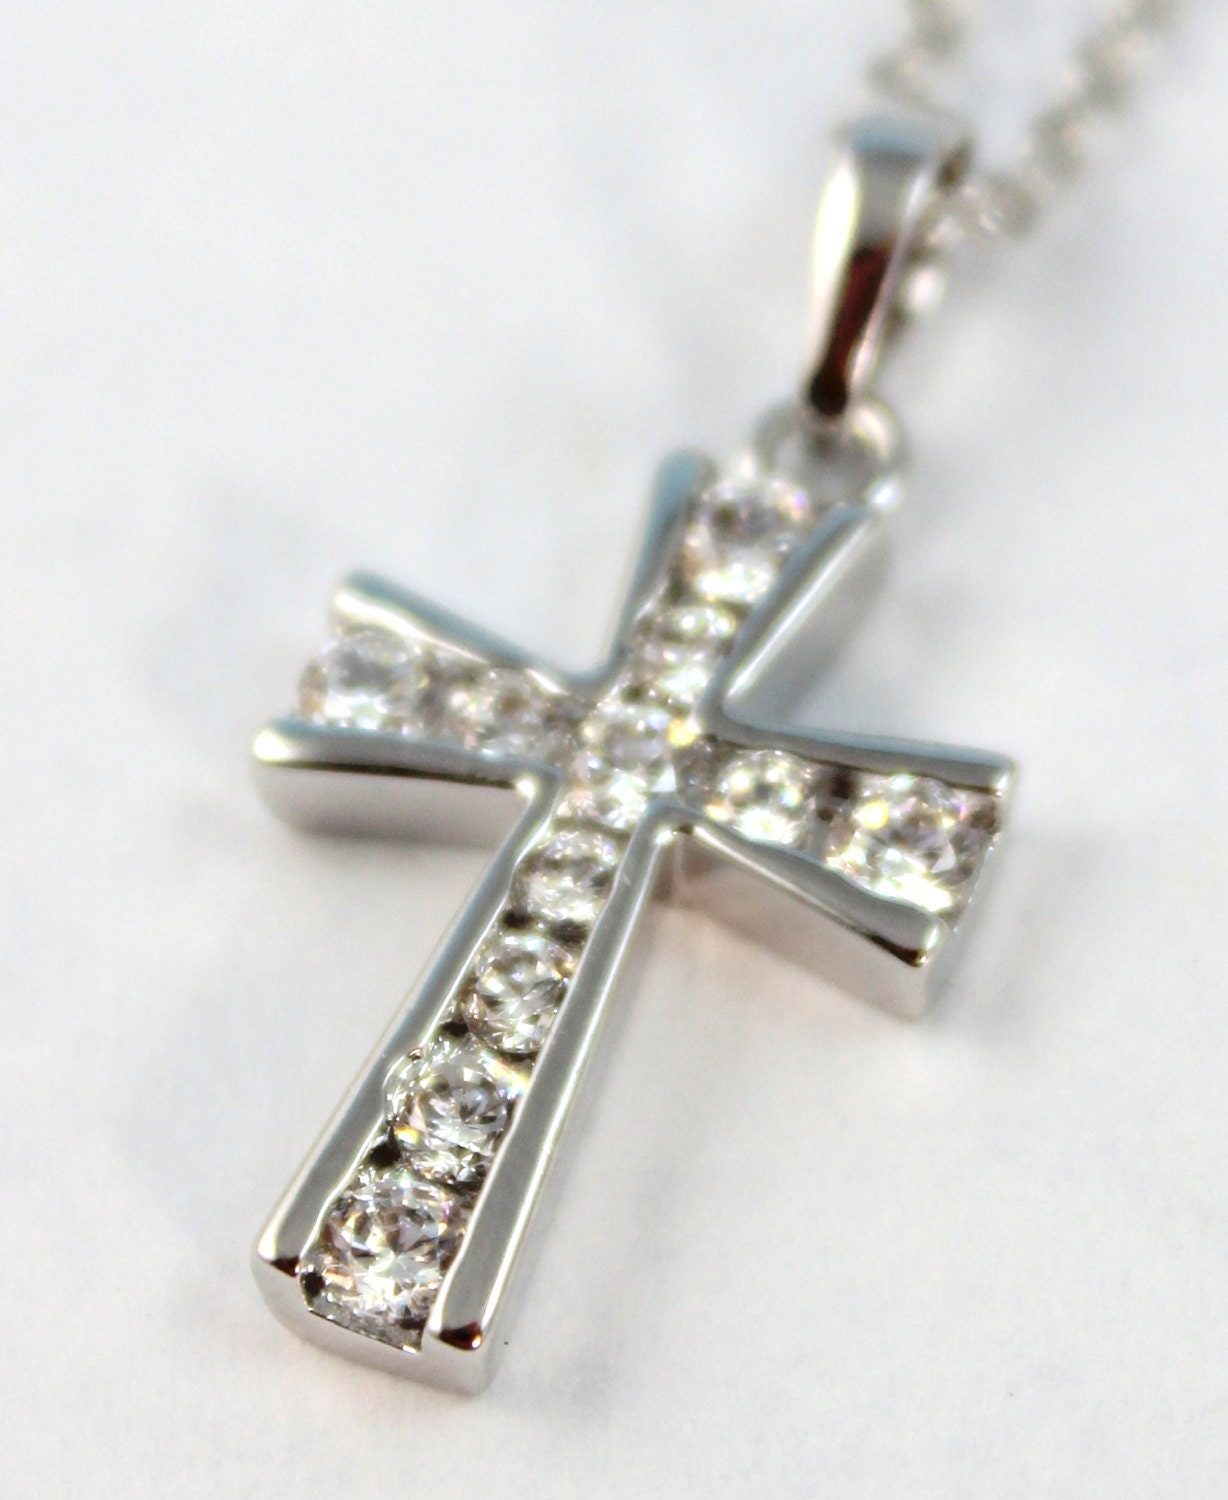 cross necklace women white gold filled women high quality. Black Bedroom Furniture Sets. Home Design Ideas